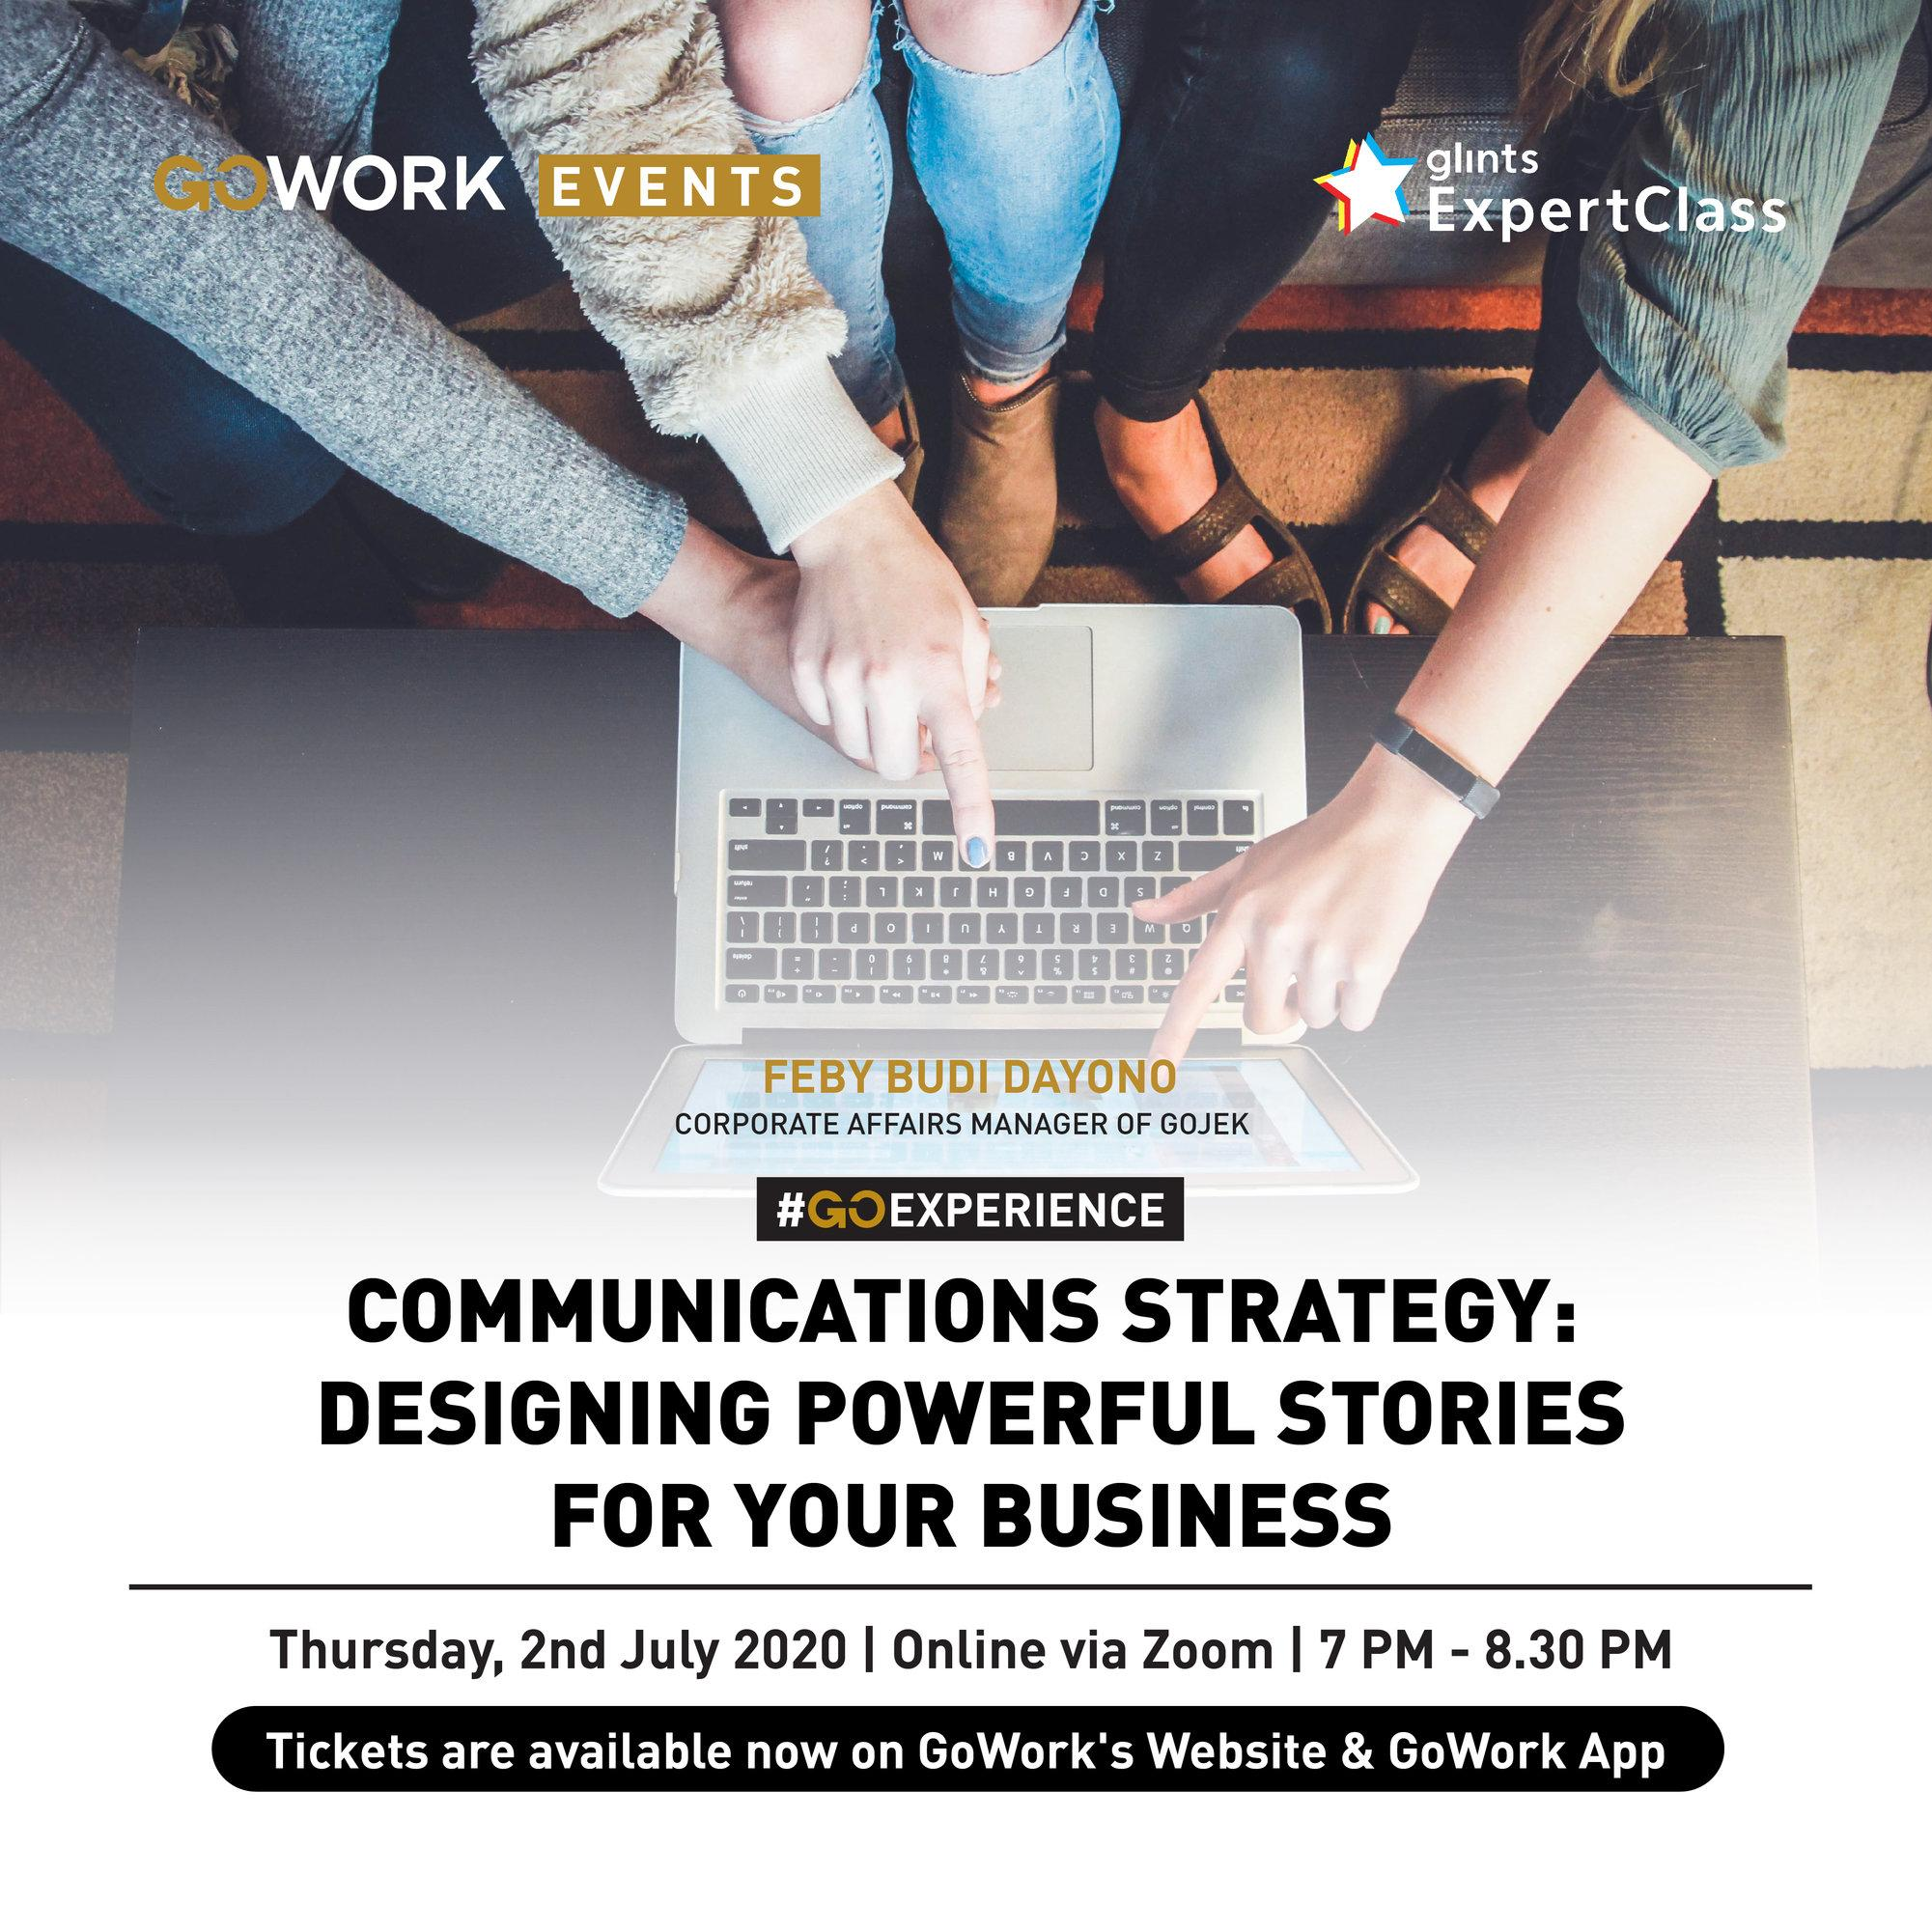 Communications Strategy: Designing Powerful Stories for Your Business